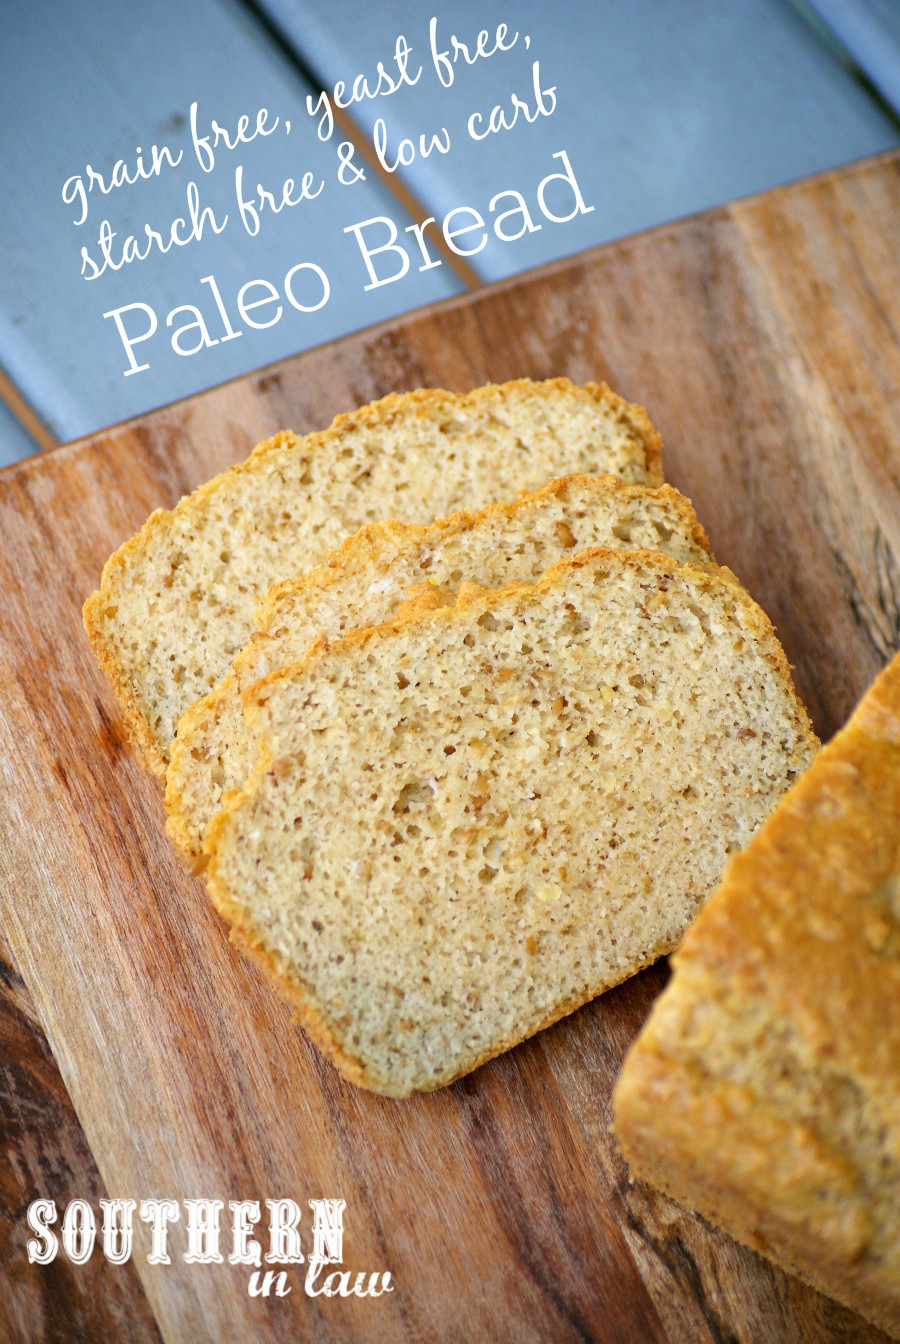 Bread Recipe With Yeast  Southern In Law Recipe Starch Yeast & Grain Free Paleo